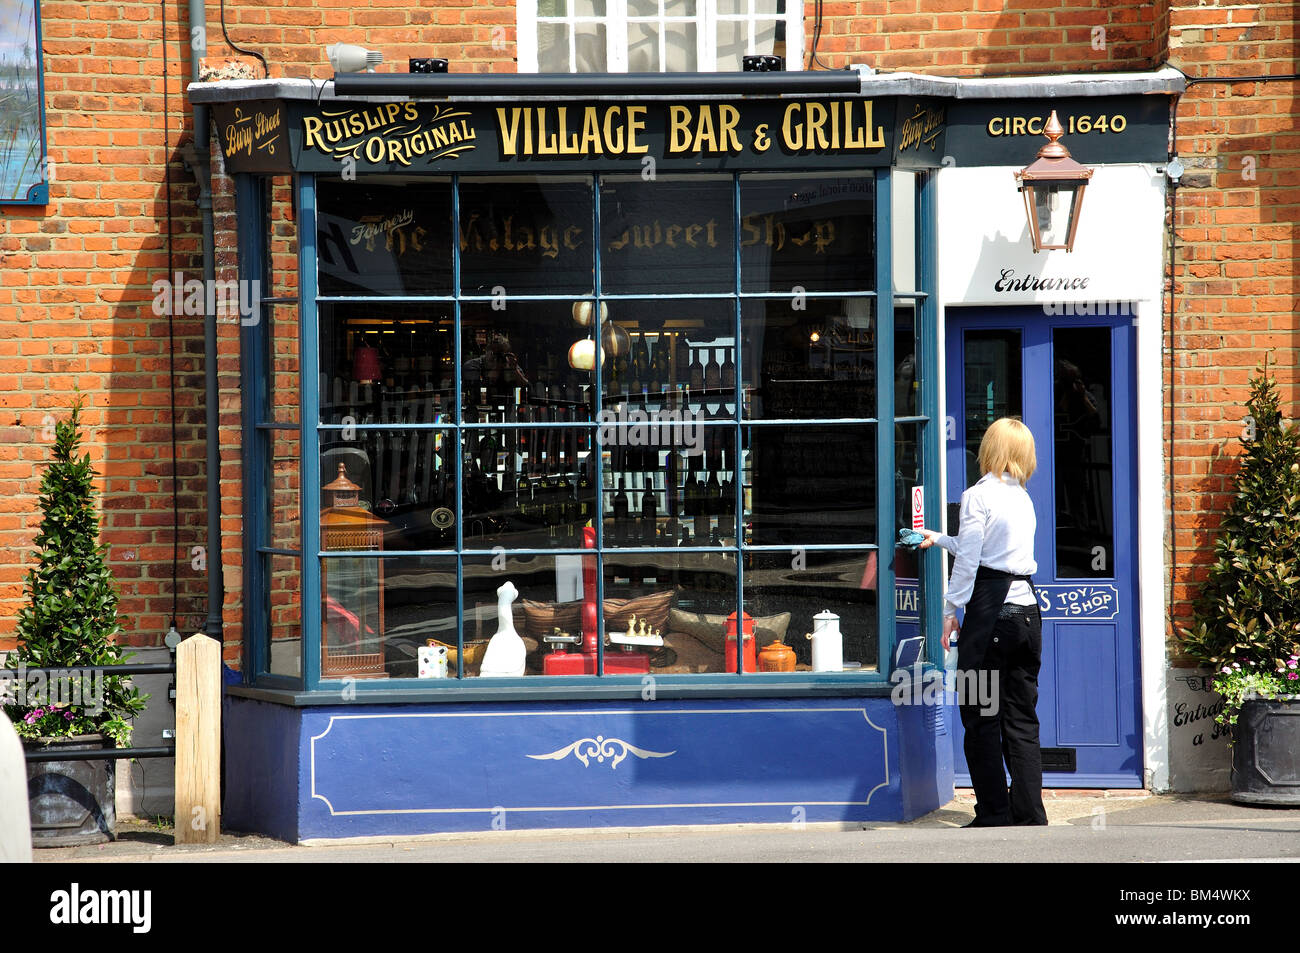 The Village Bar   Grill  High Street  Ruislip  London Borough of Hillingdon. Hillingdon High Street Stock Photos   Hillingdon High Street Stock